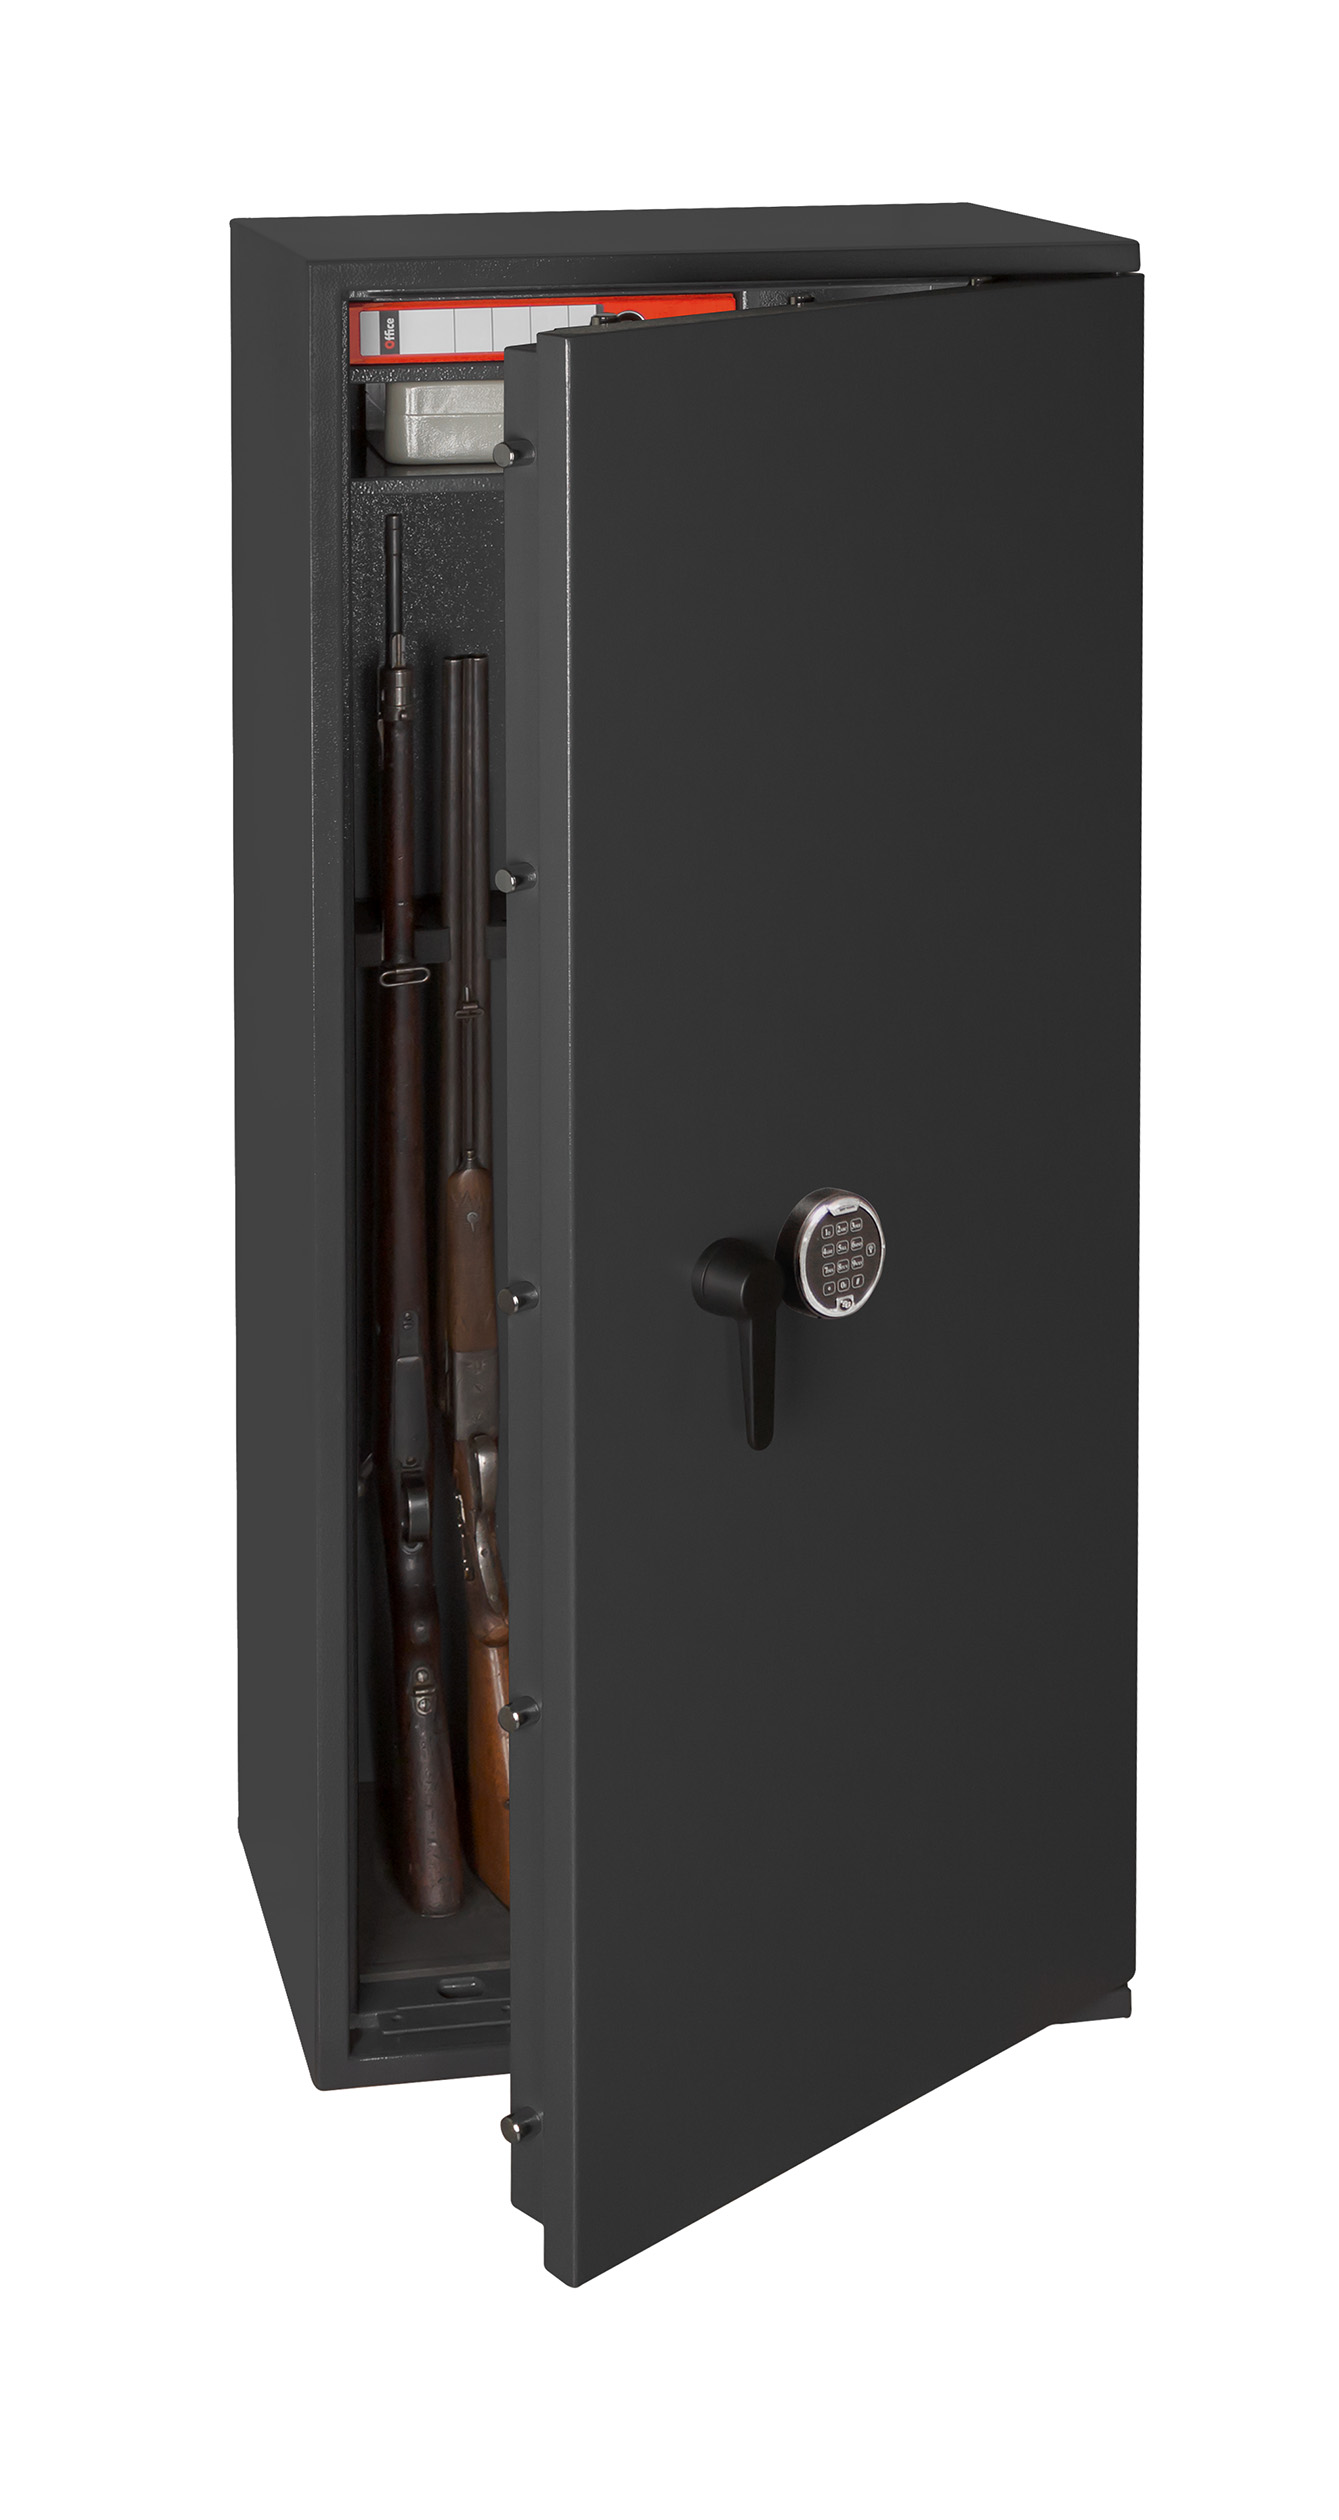 waffenschrank gun safe kombi nach en 1143 1 mit zahlenschloss. Black Bedroom Furniture Sets. Home Design Ideas